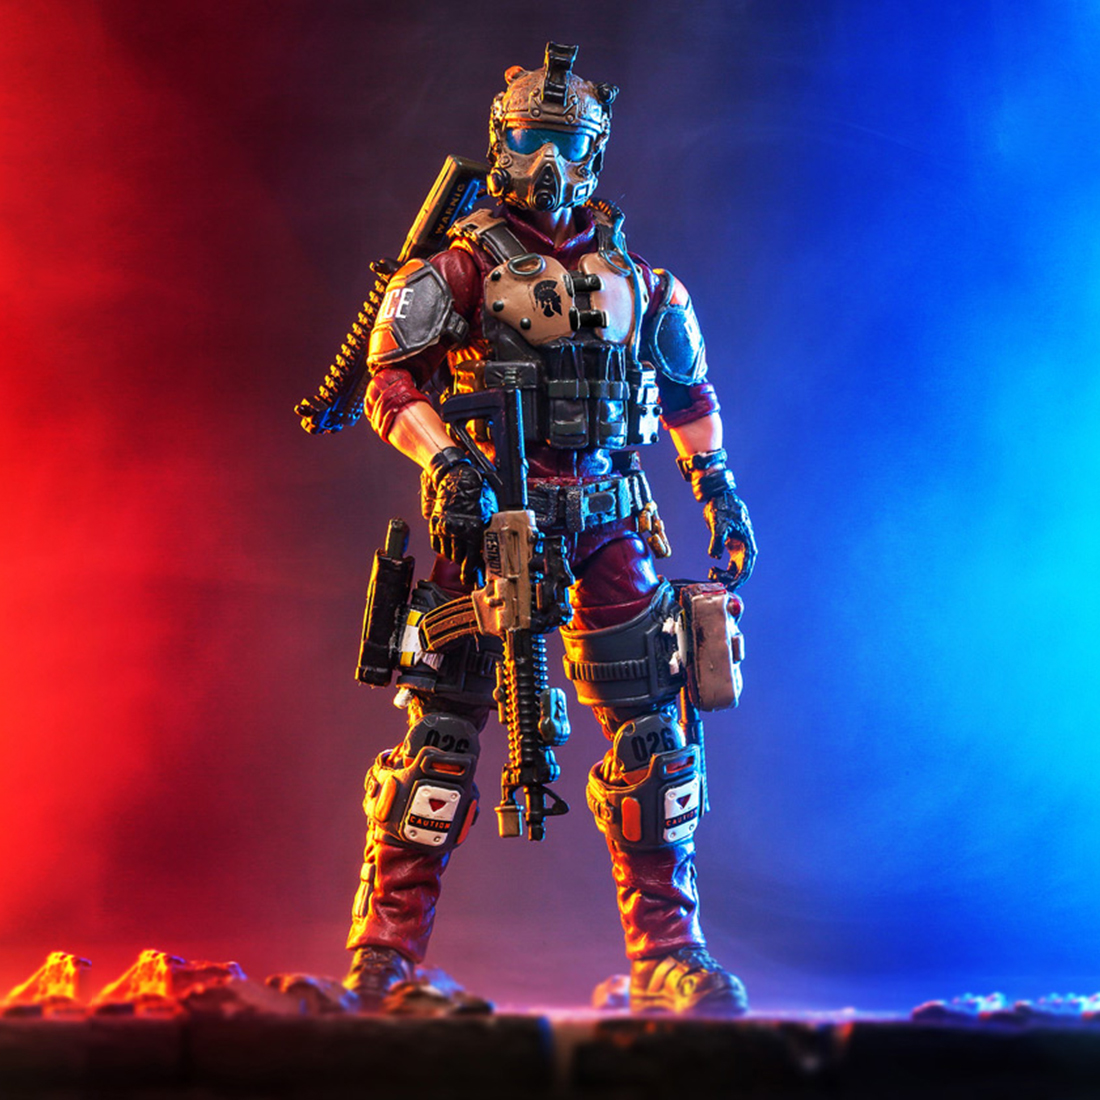 Hot 10.5cm Removable USMC Hero Action Figure Soldier Model Collection With High Degree Of Reduction Figure Collectible Model Toy